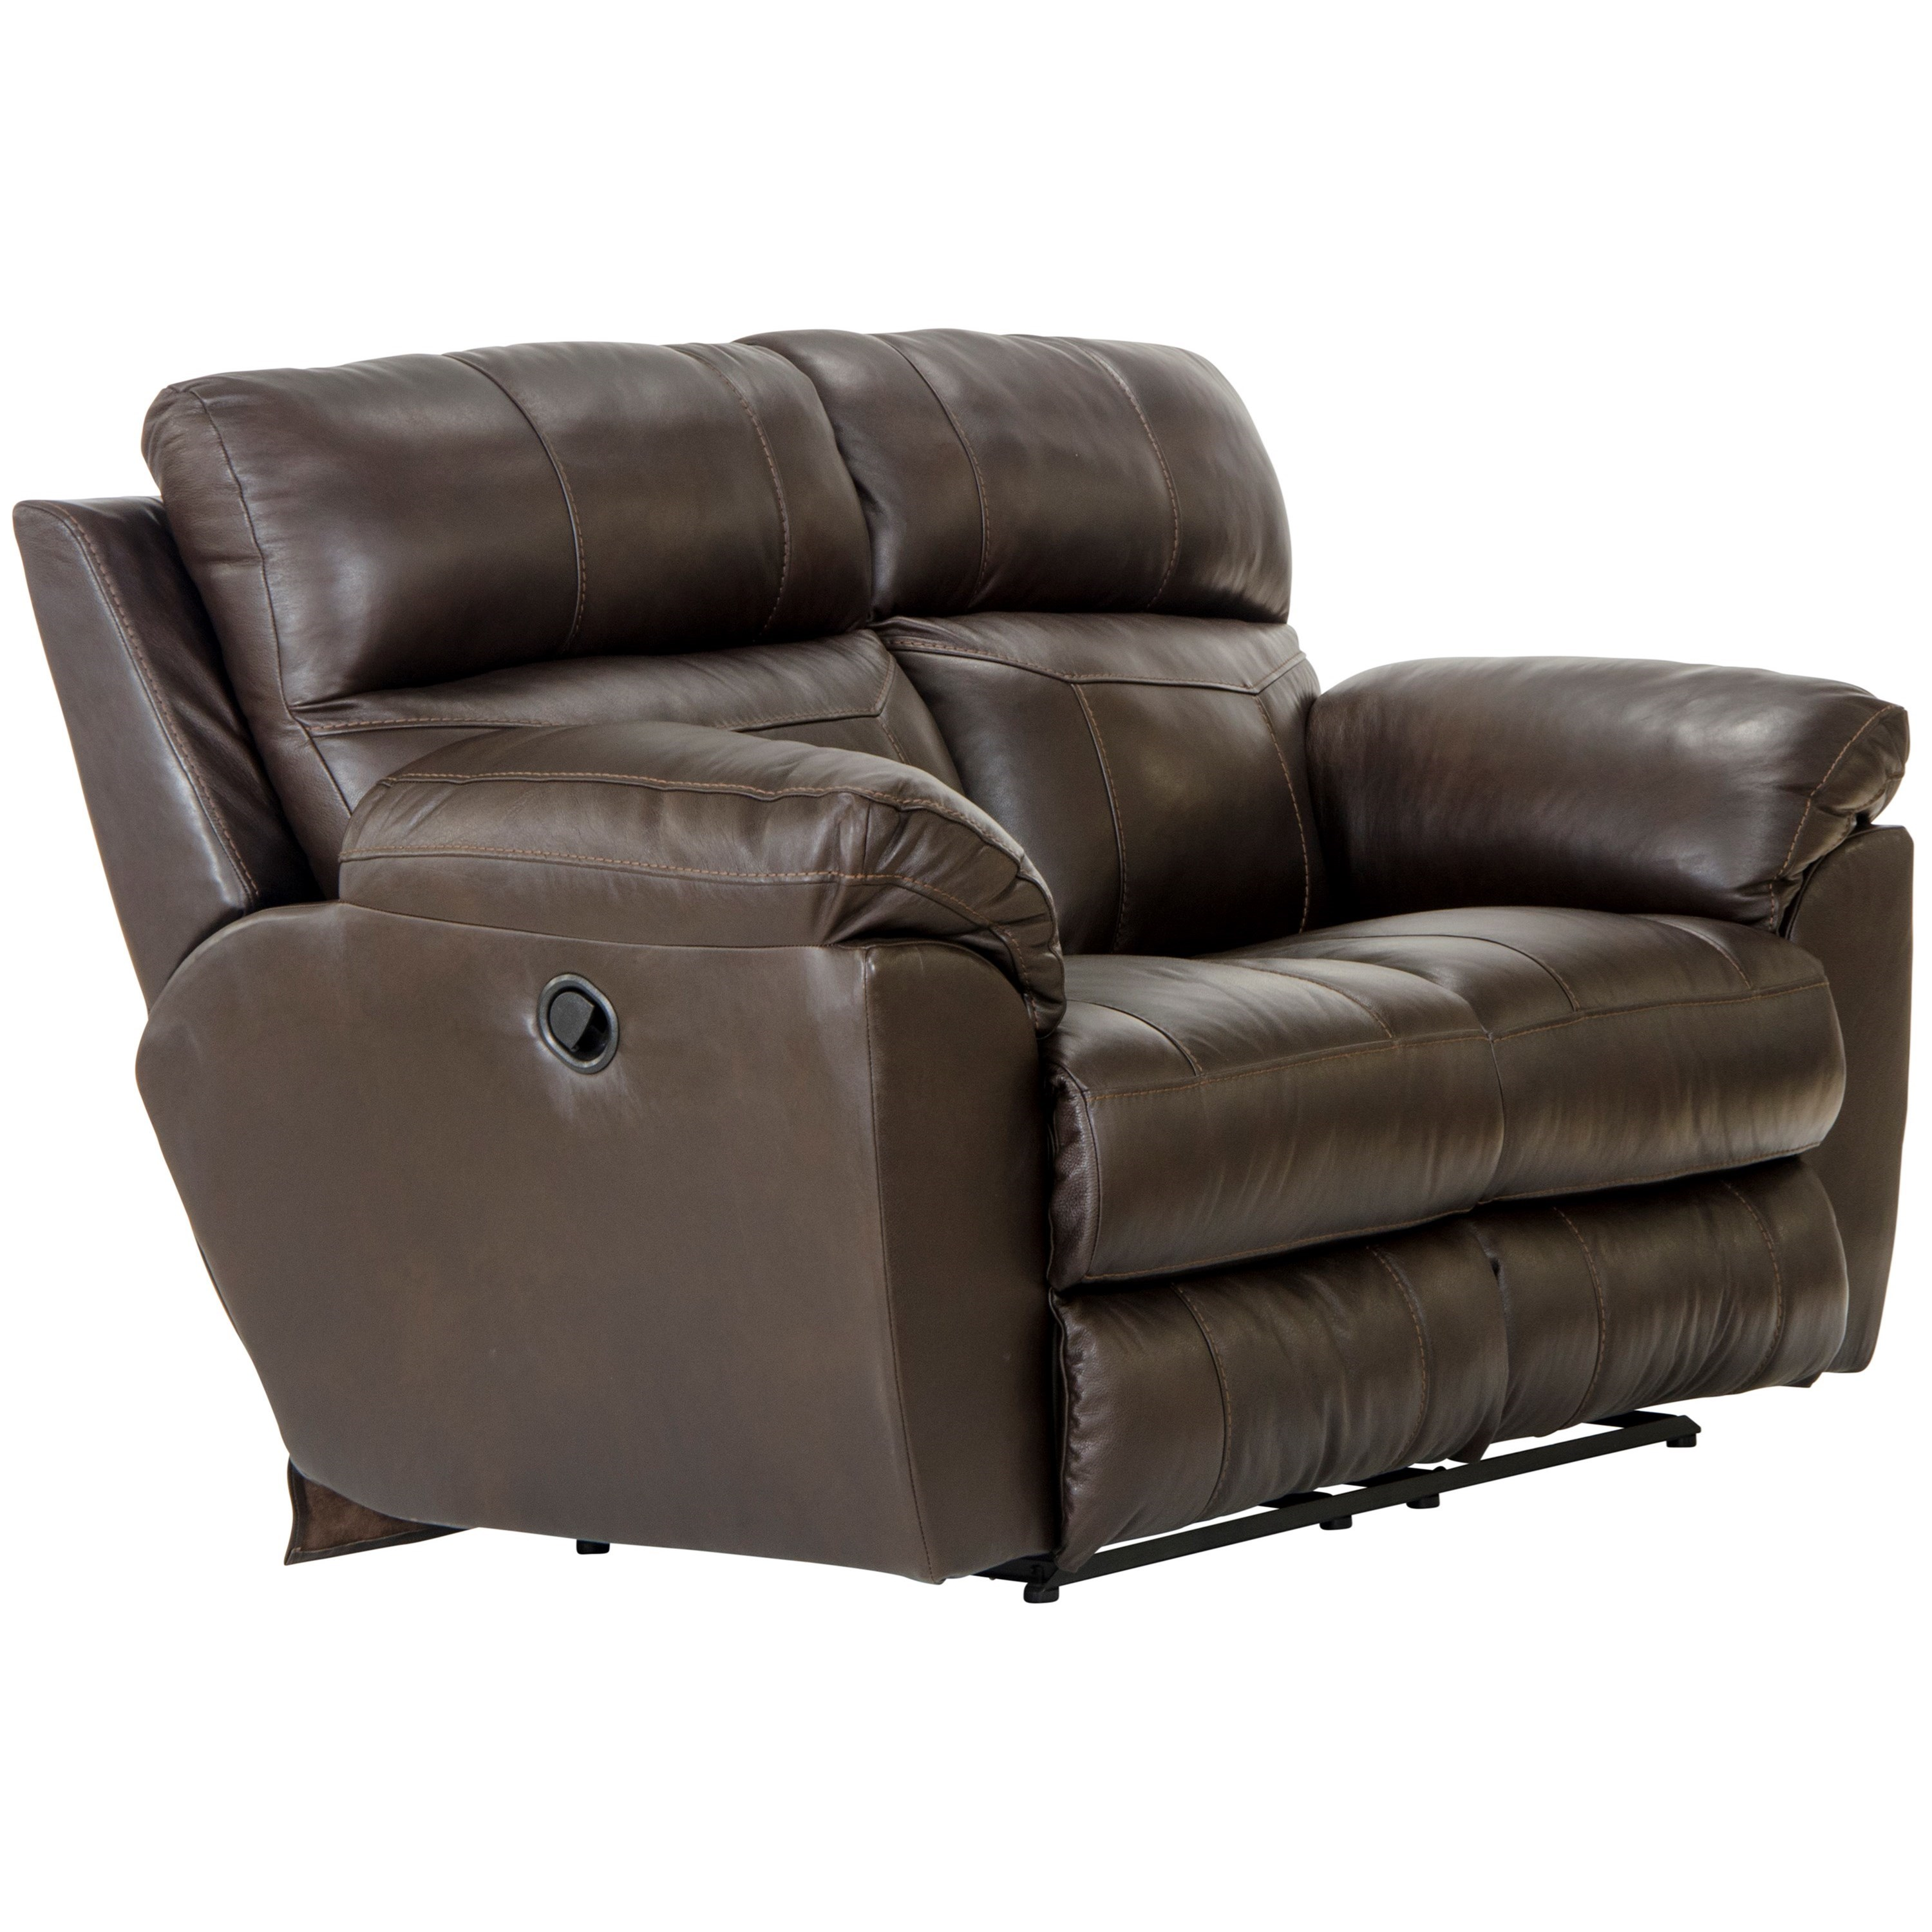 Costa Power Lay Flat Reclining Loveseat by Catnapper at Northeast Factory Direct